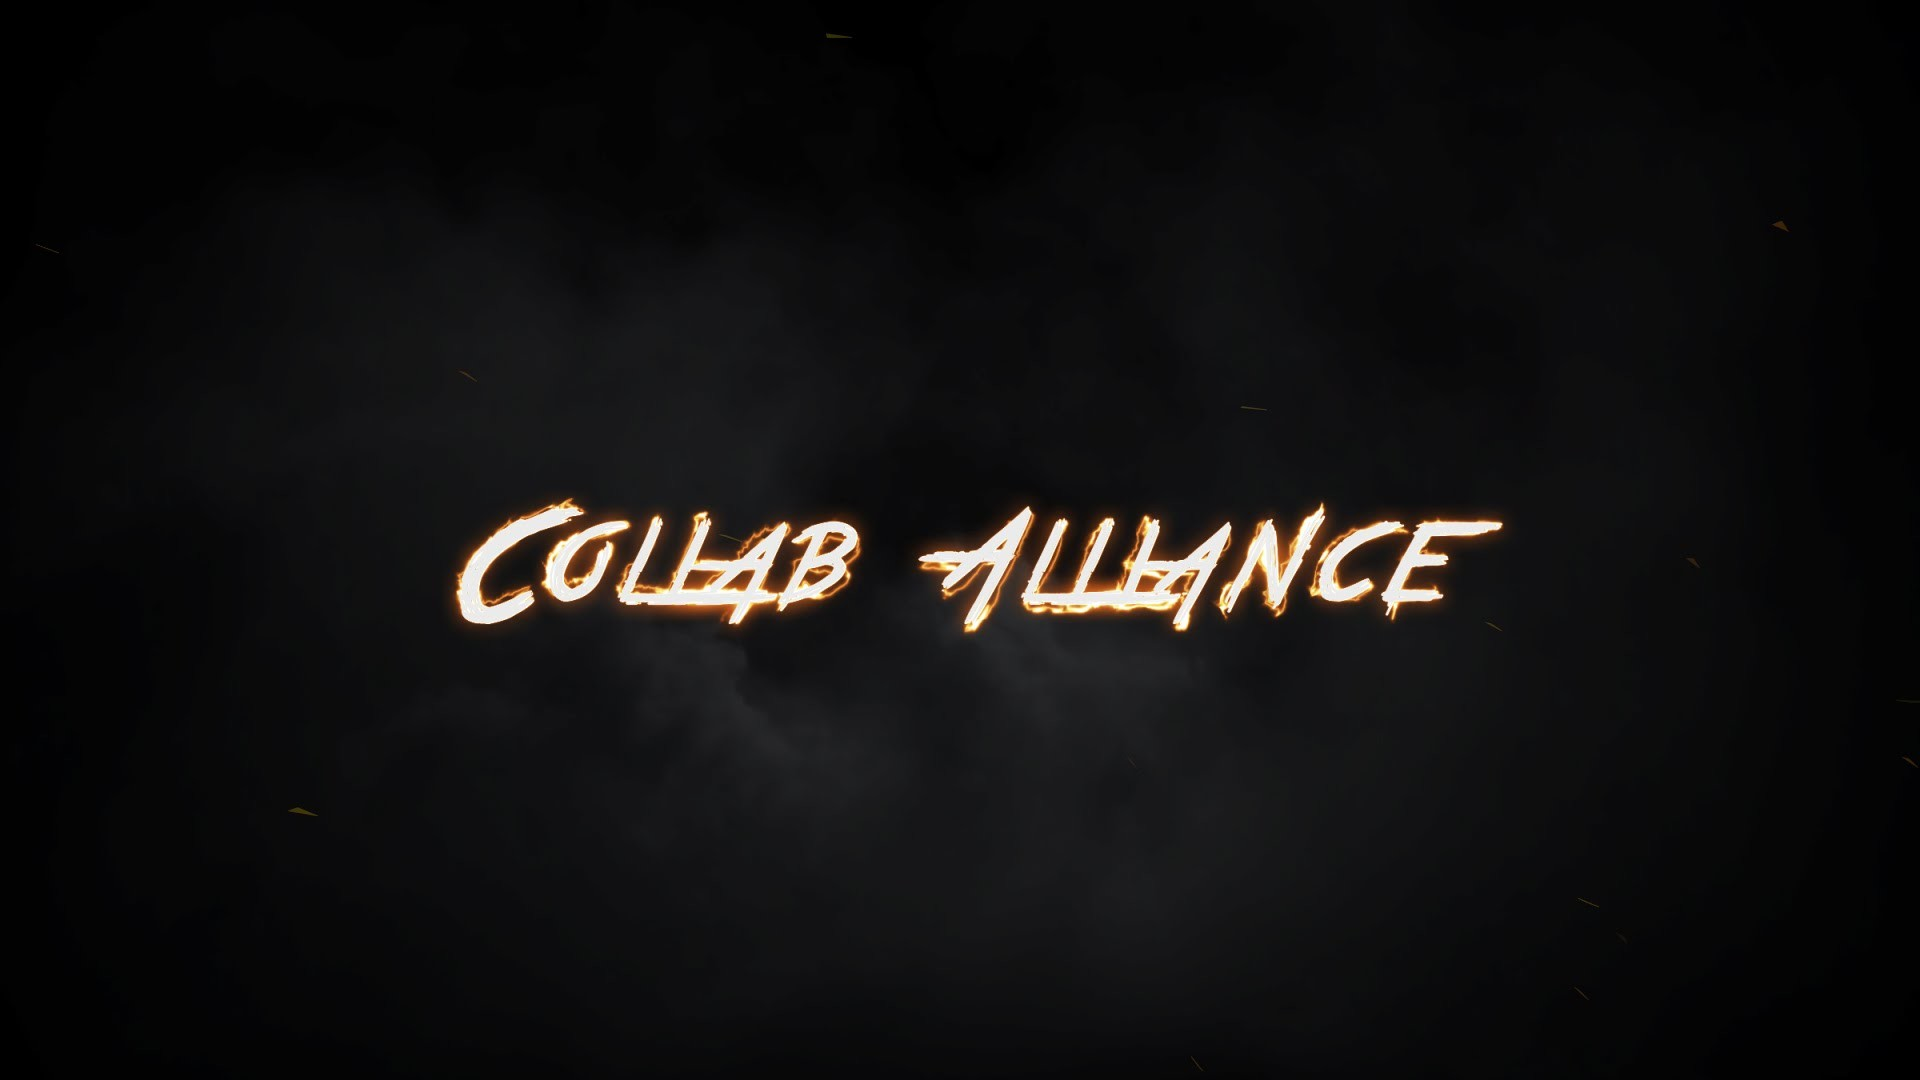 1920x1080 Introducing Collab Alliance - Featuring The Biggest Youtubers In Music  Production